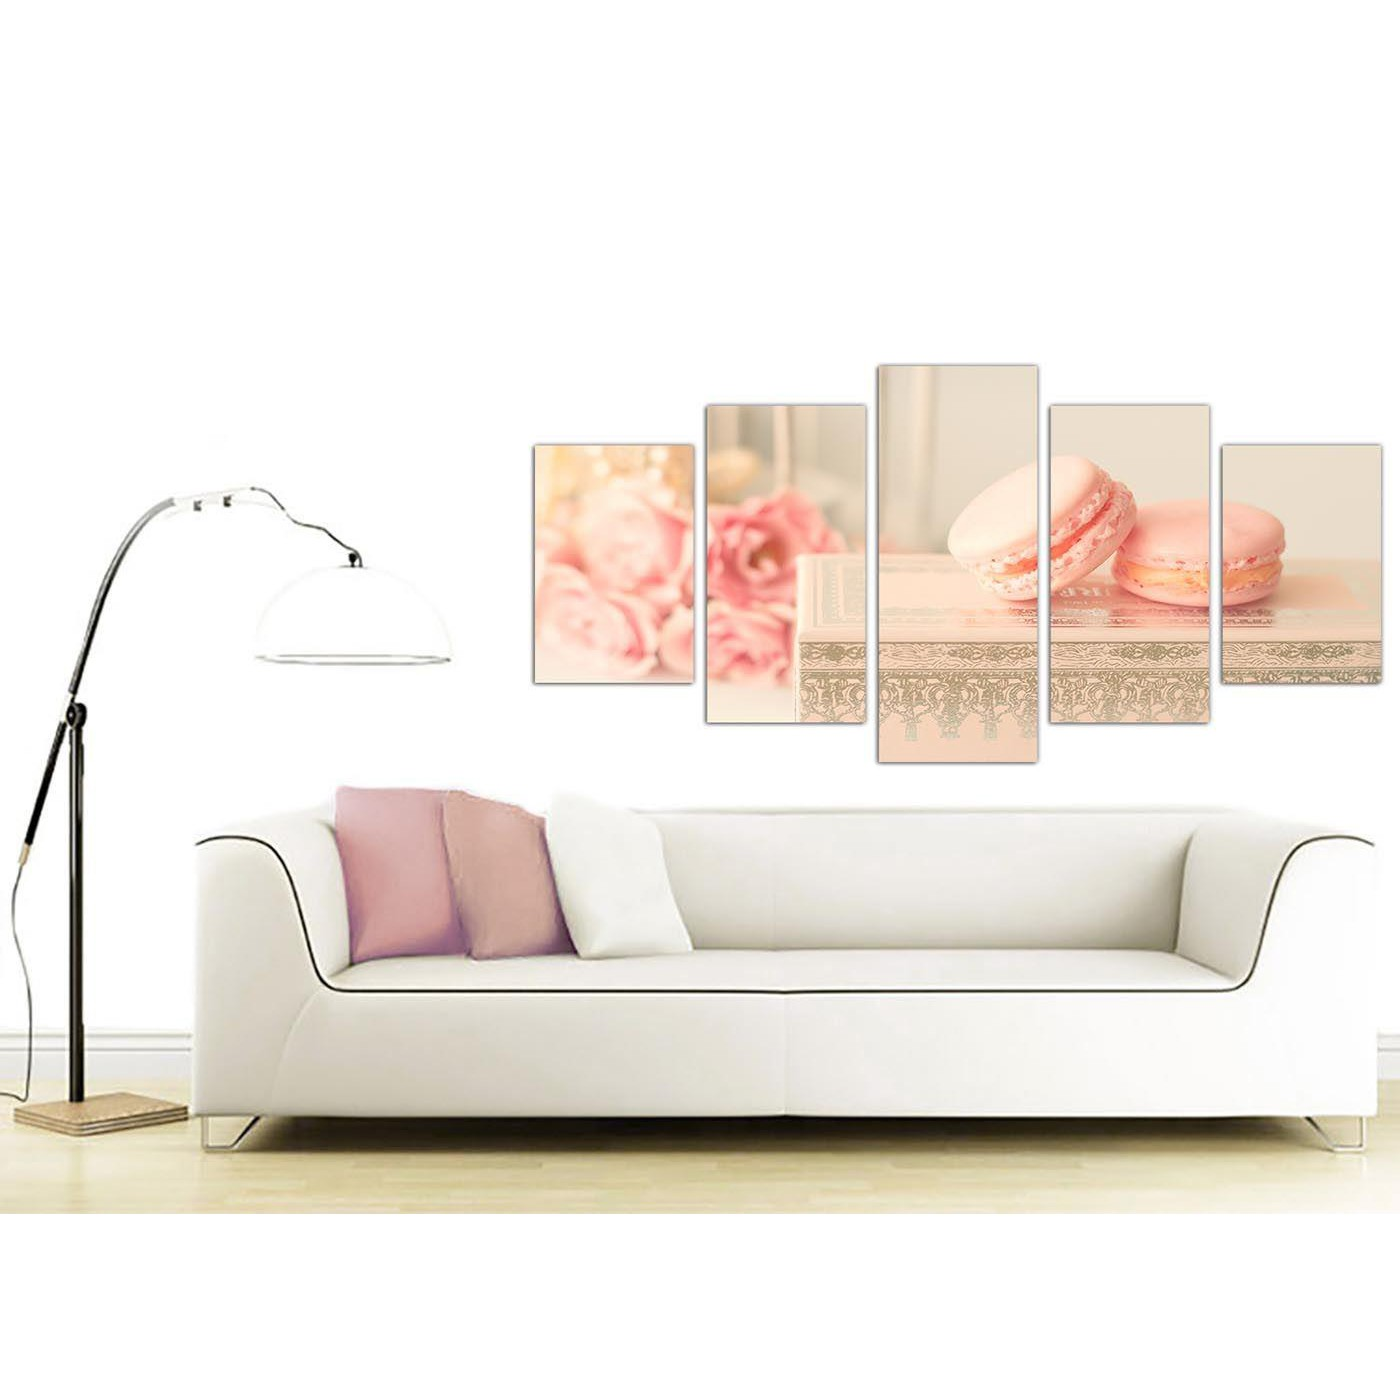 3 Piece Purple Cherry Blossom Muti Panel Abstract Modern: Extra Large Pink Cream French Shabby Chic Bedroom Canvas